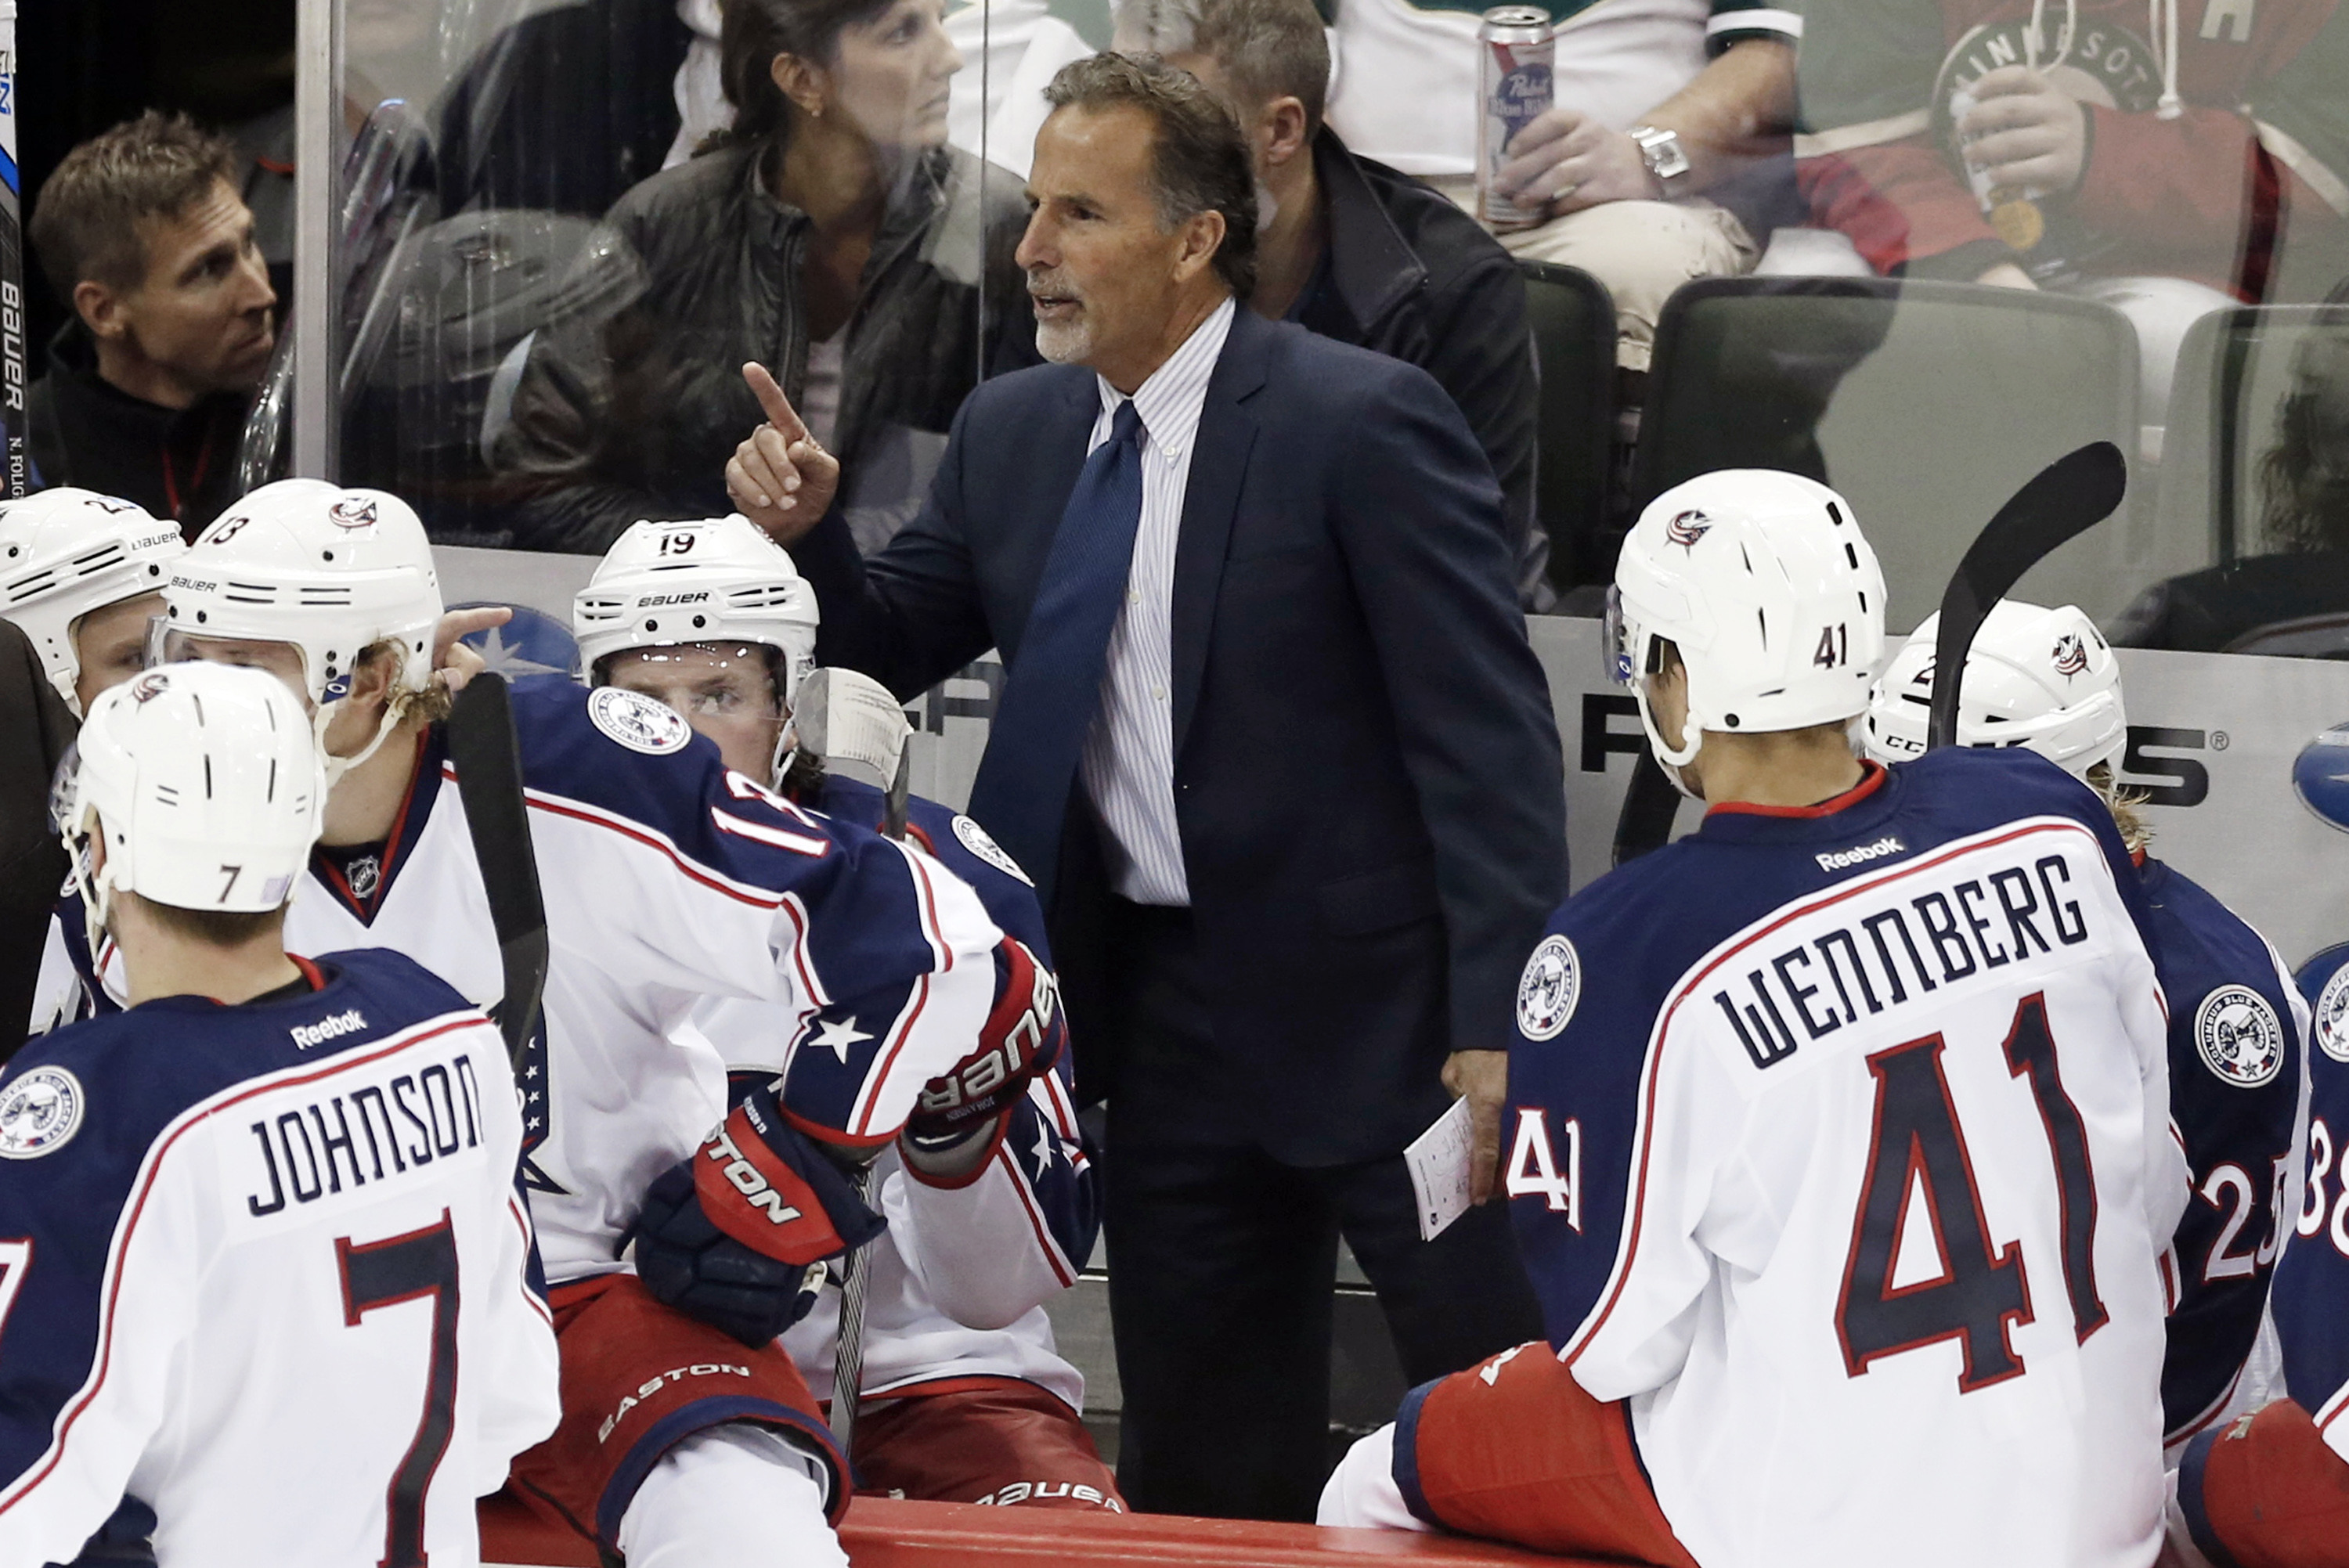 New Columbus Blue Jackets head coach John Tortorella gives instructions during a time out in the third period of an NHL hockey game against the Minnesota Wild, Thursday, Oct. 22, 2015, in St. Paul, Minn. The Wild won 3-2. (AP Photo/Jim Mone)